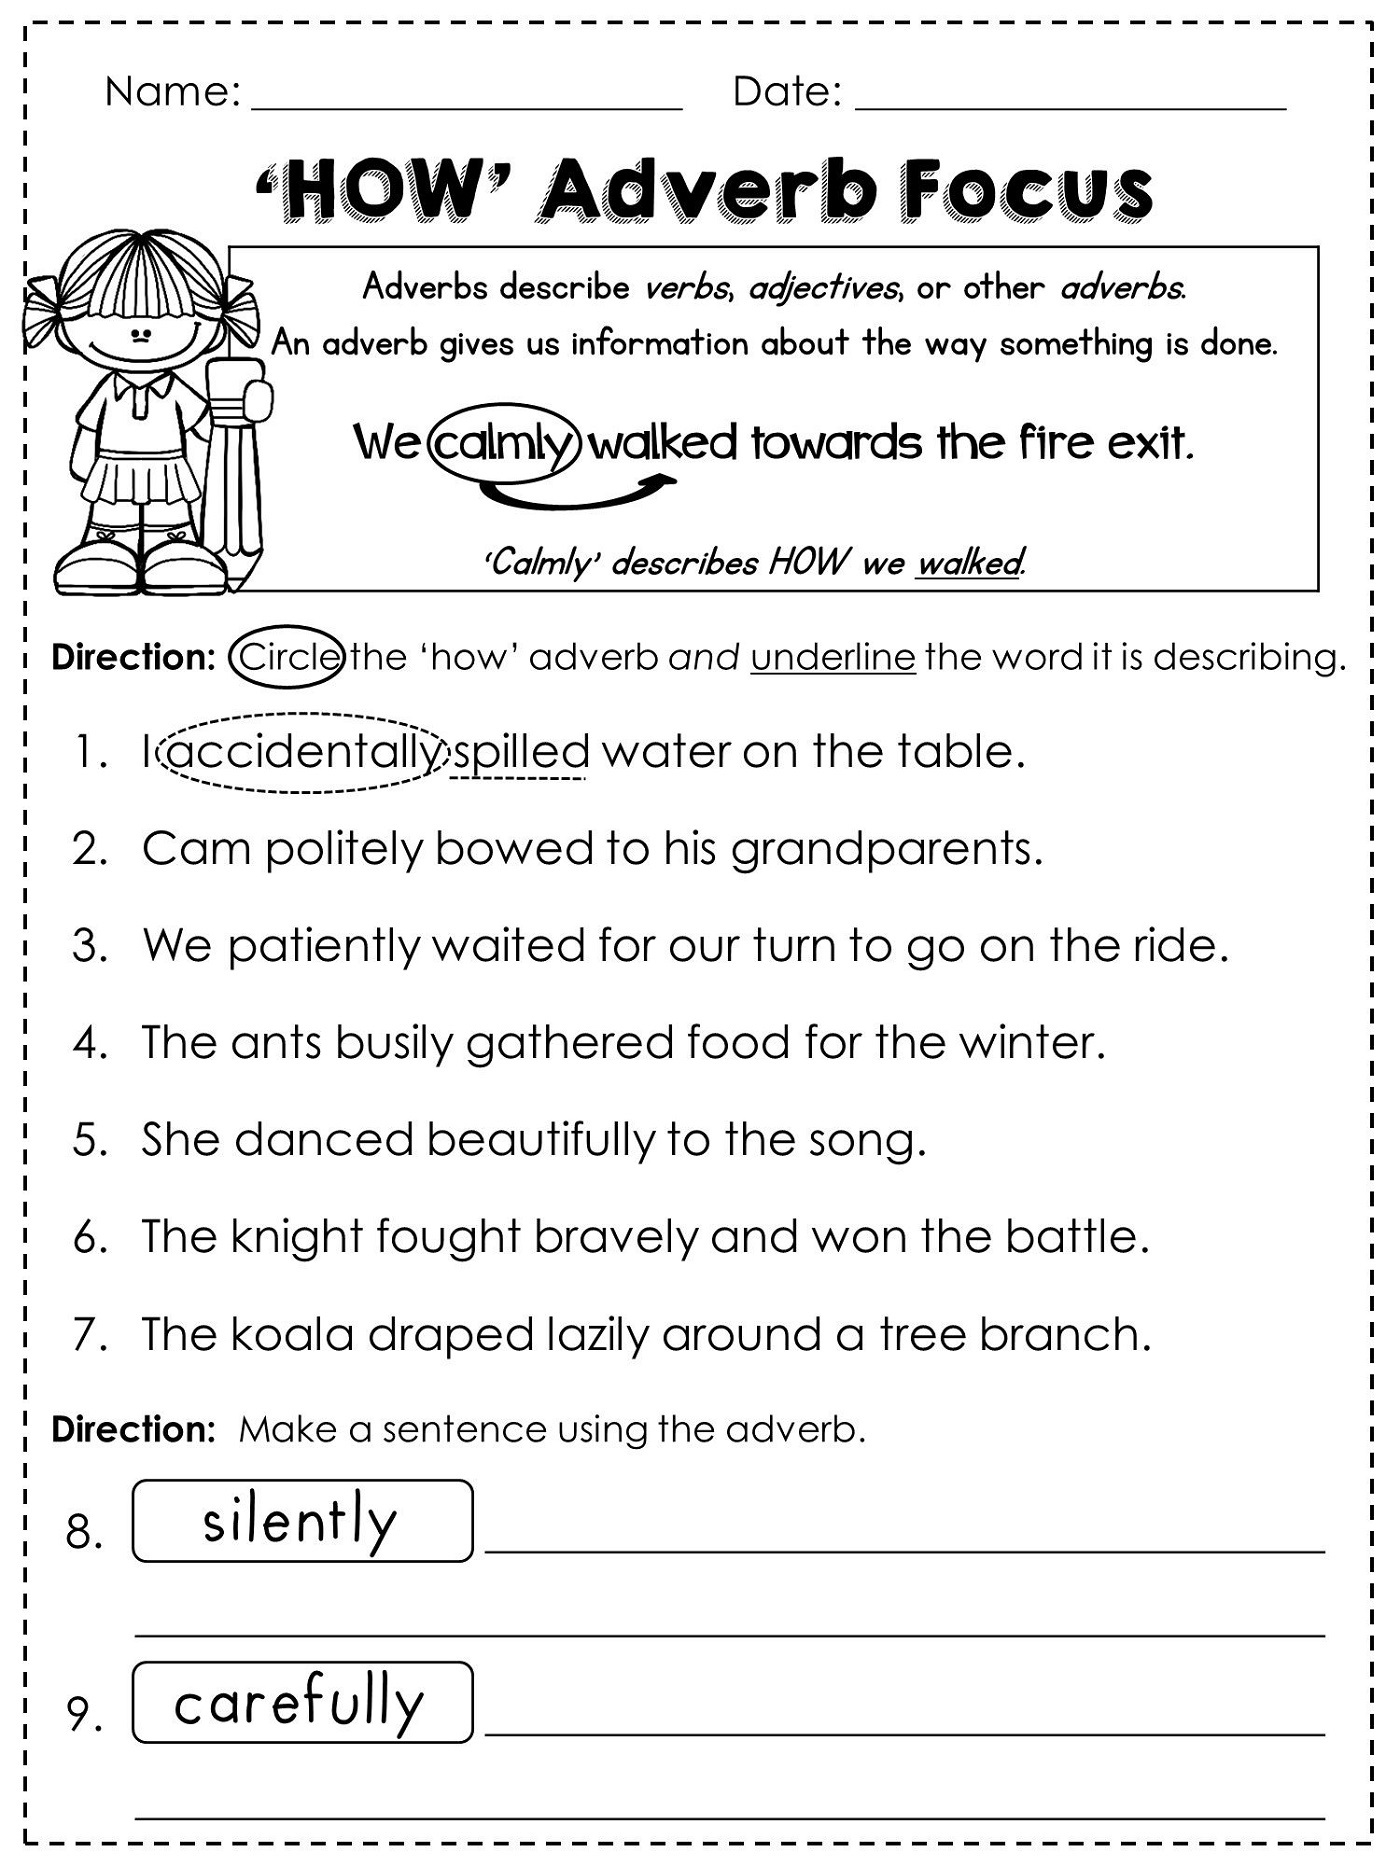 Free Grammar Worksheets Adverbs K5 Worksheets